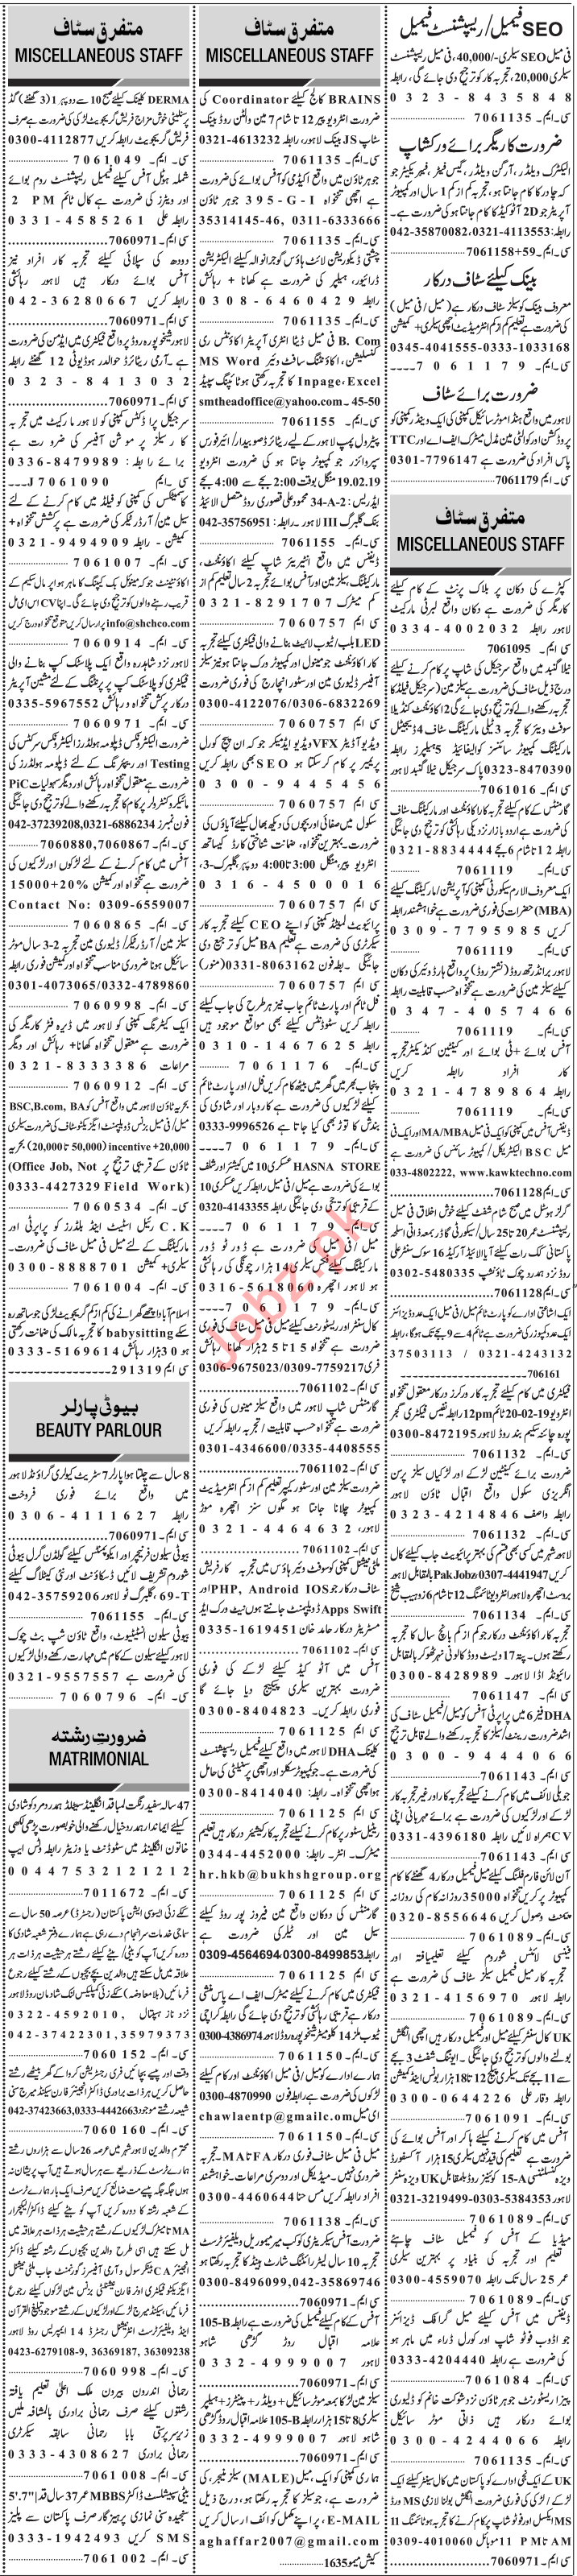 Jang Sunday Classified Ads 17th Feb 2019 Miscellaneous Staff